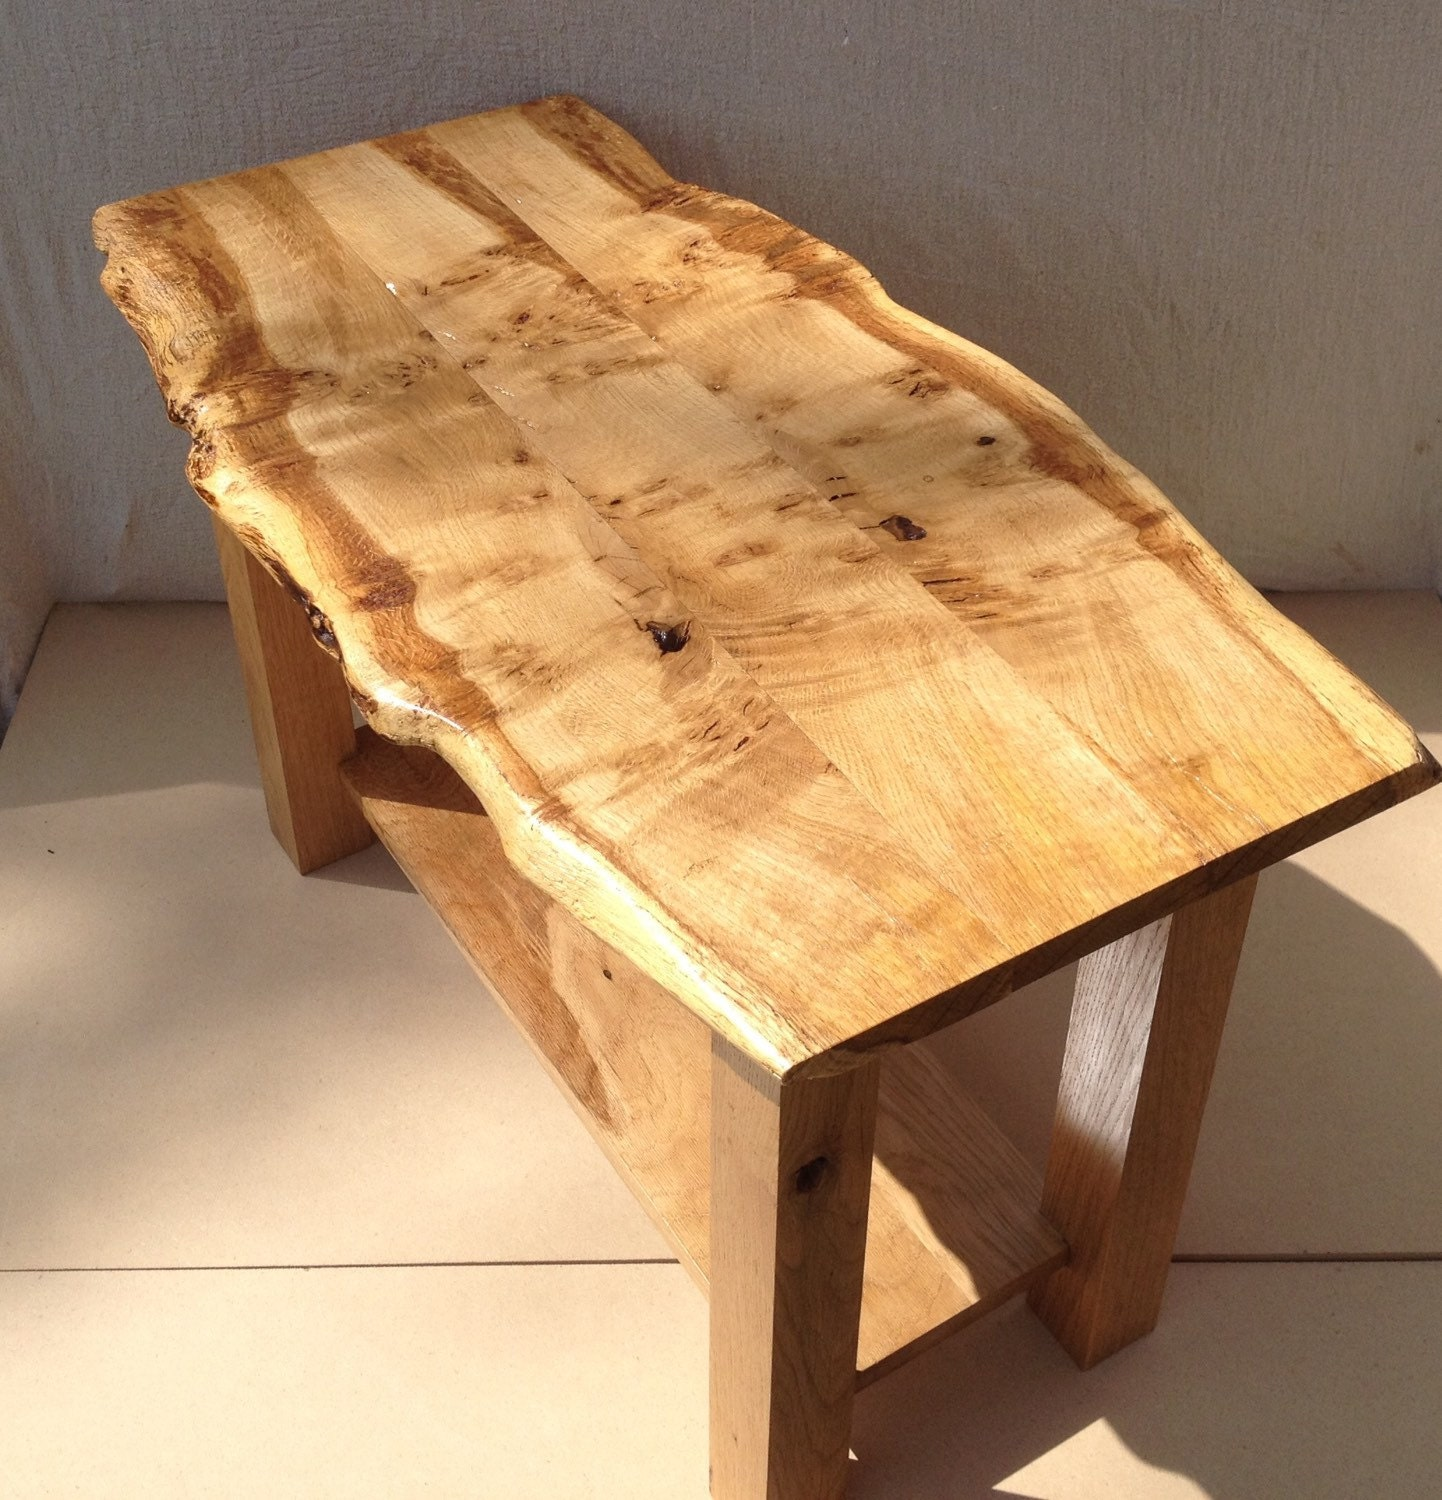 Live edge table oak coffee table waney edge coffee table : ilfullxfull77454239849lq from www.etsy.com size 1442 x 1500 jpeg 416kB